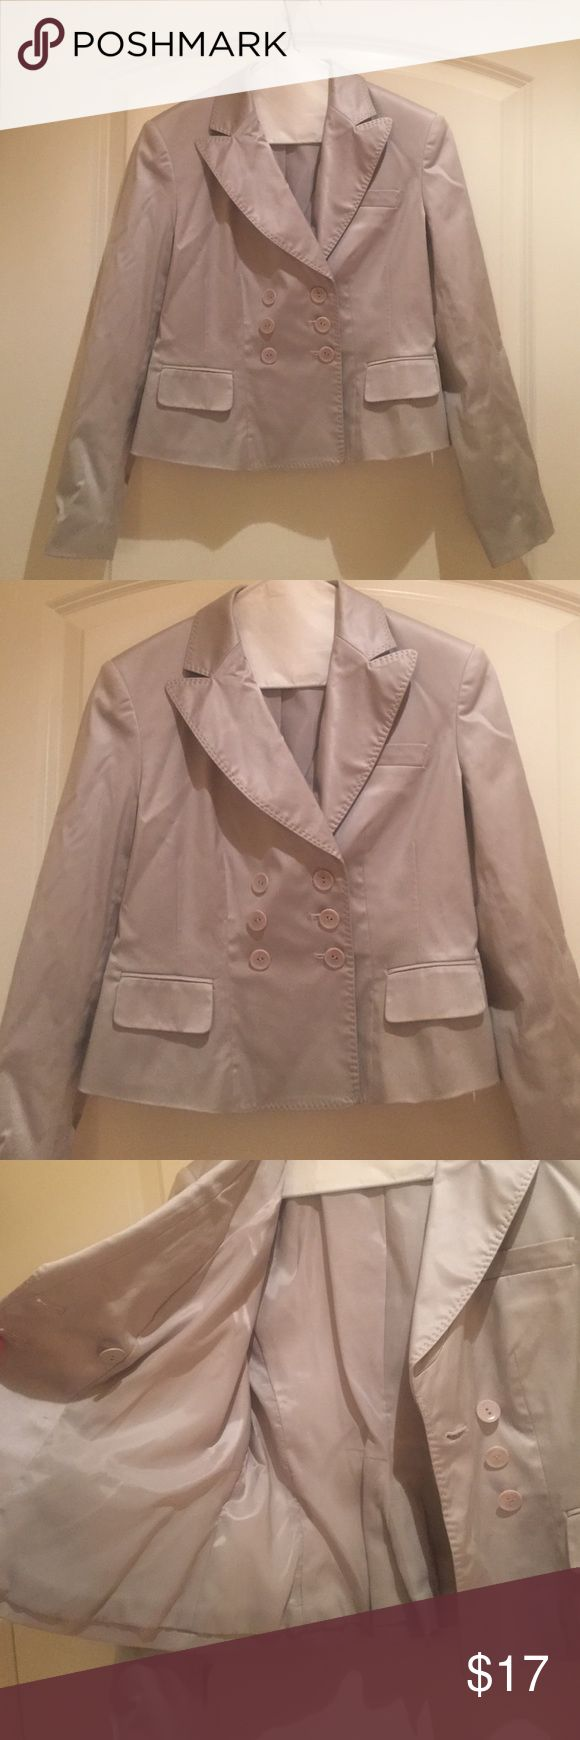 Pretty Talbots Kaki Blazer size 2❤️ Gently used but in great condition! Talbots 3 front button jacket size 2 petit. Polyester lining, outer: 56 percent silk, 39 percent cotton, 5 percent spandex. Minor mark on inside of jacket-see pic. Shoulder padding, 21 inches long. 20 inch arm length. 16 inches arm pit to arm pit. 5 inch slit in back. Talbots Jackets & Coats Blazers